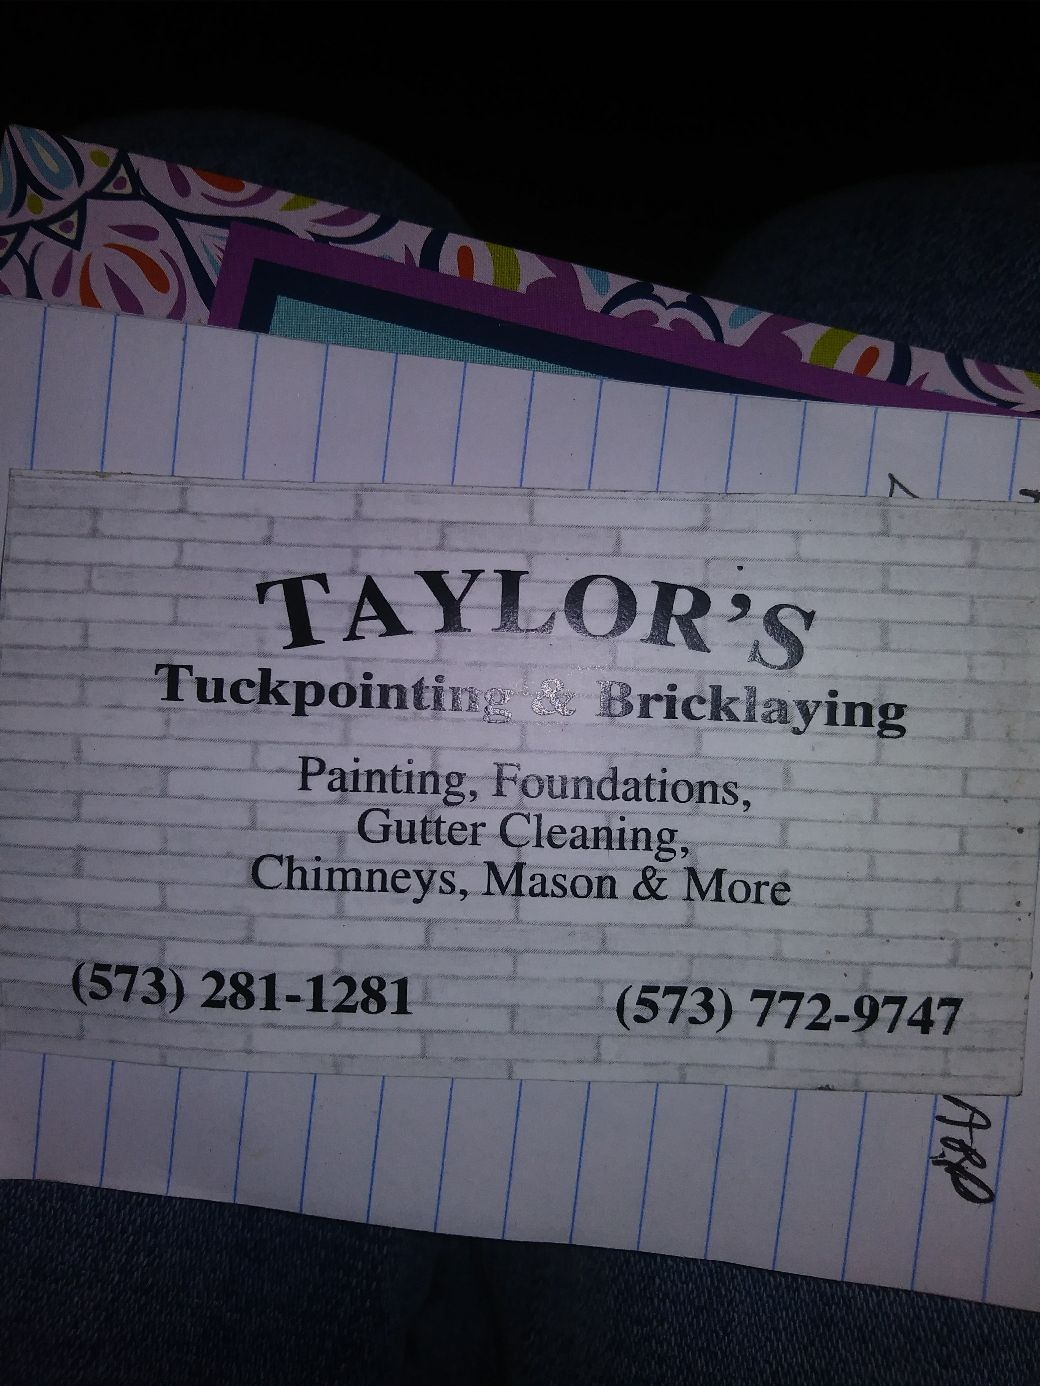 Taylor Tuckpointing and Brick Laying